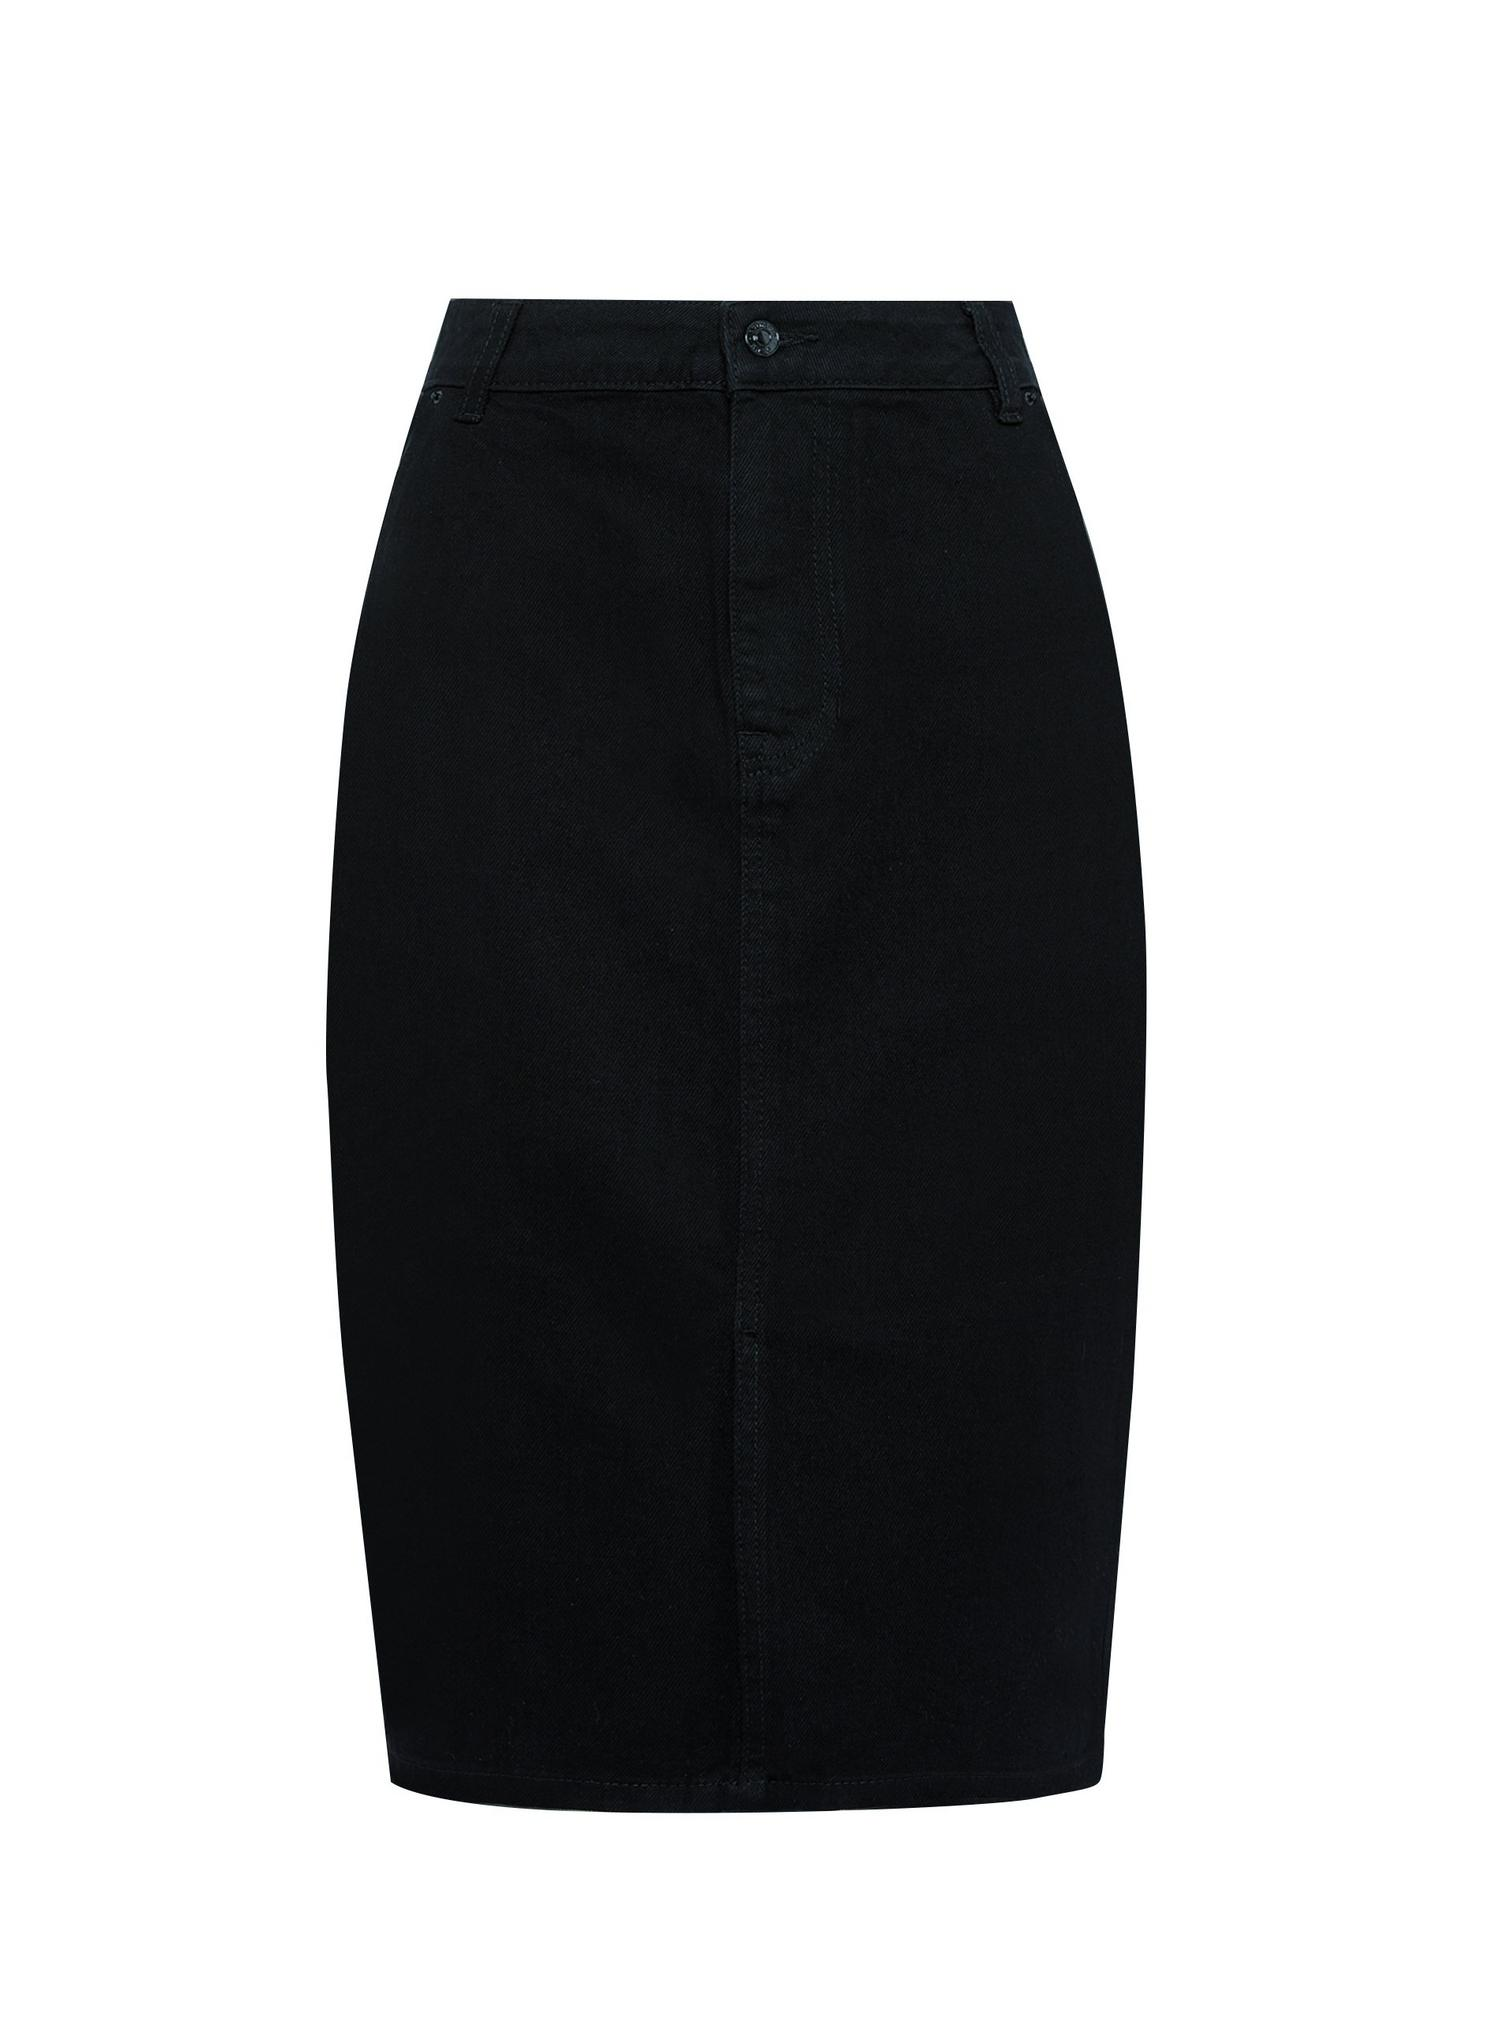 105 Black Organic Cotton Denim Midi Skirt image number 2